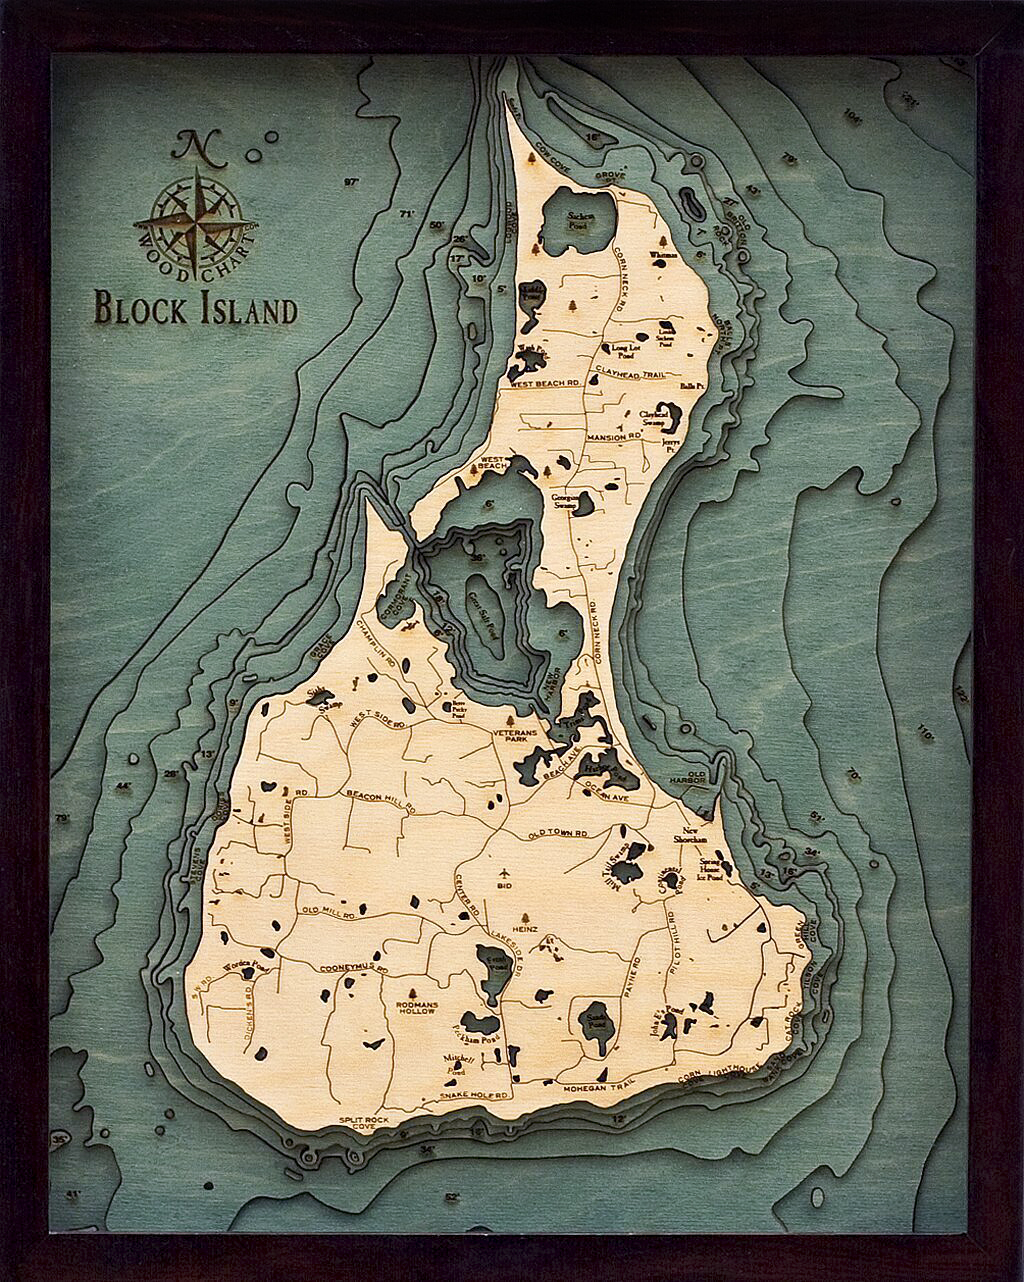 Bathymetric Map Block Island, Rhode Island